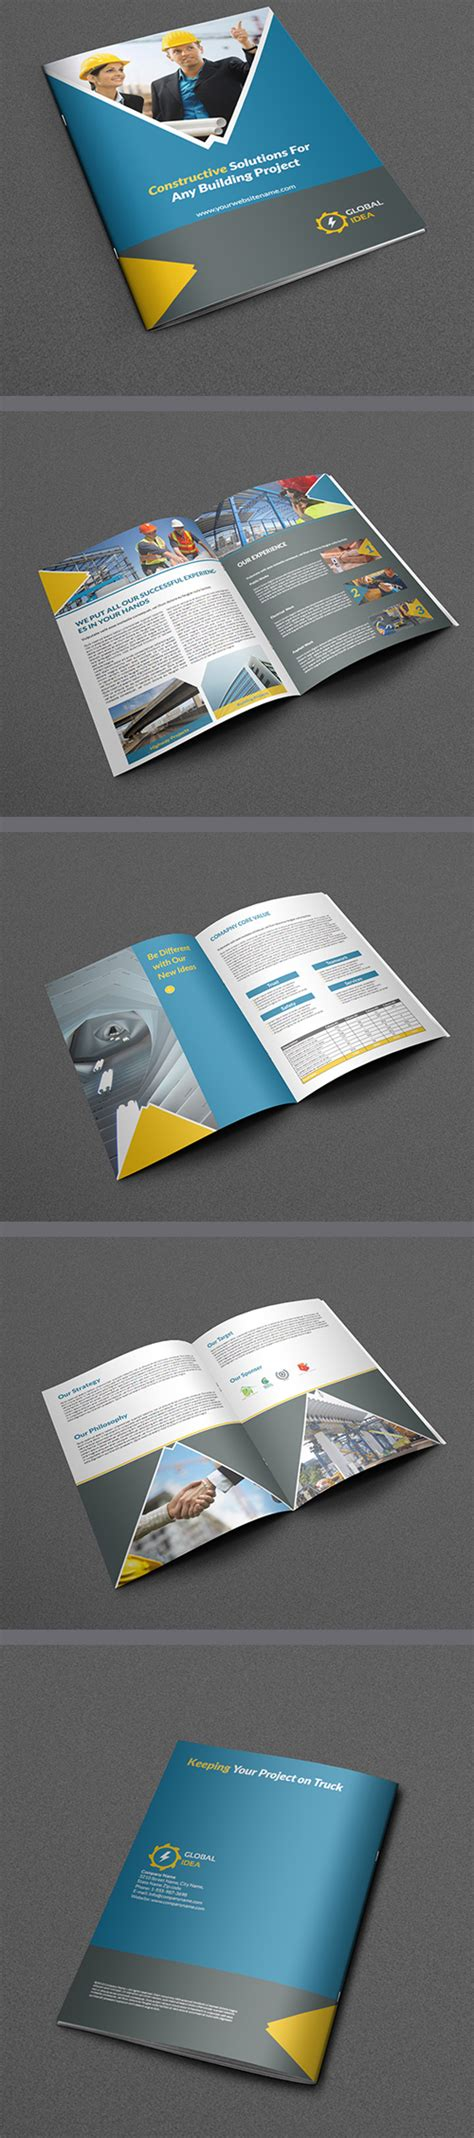 Awesome Corporate Printable Brochure Designs Graphics Design Design Blog Awesome Brochure Templates